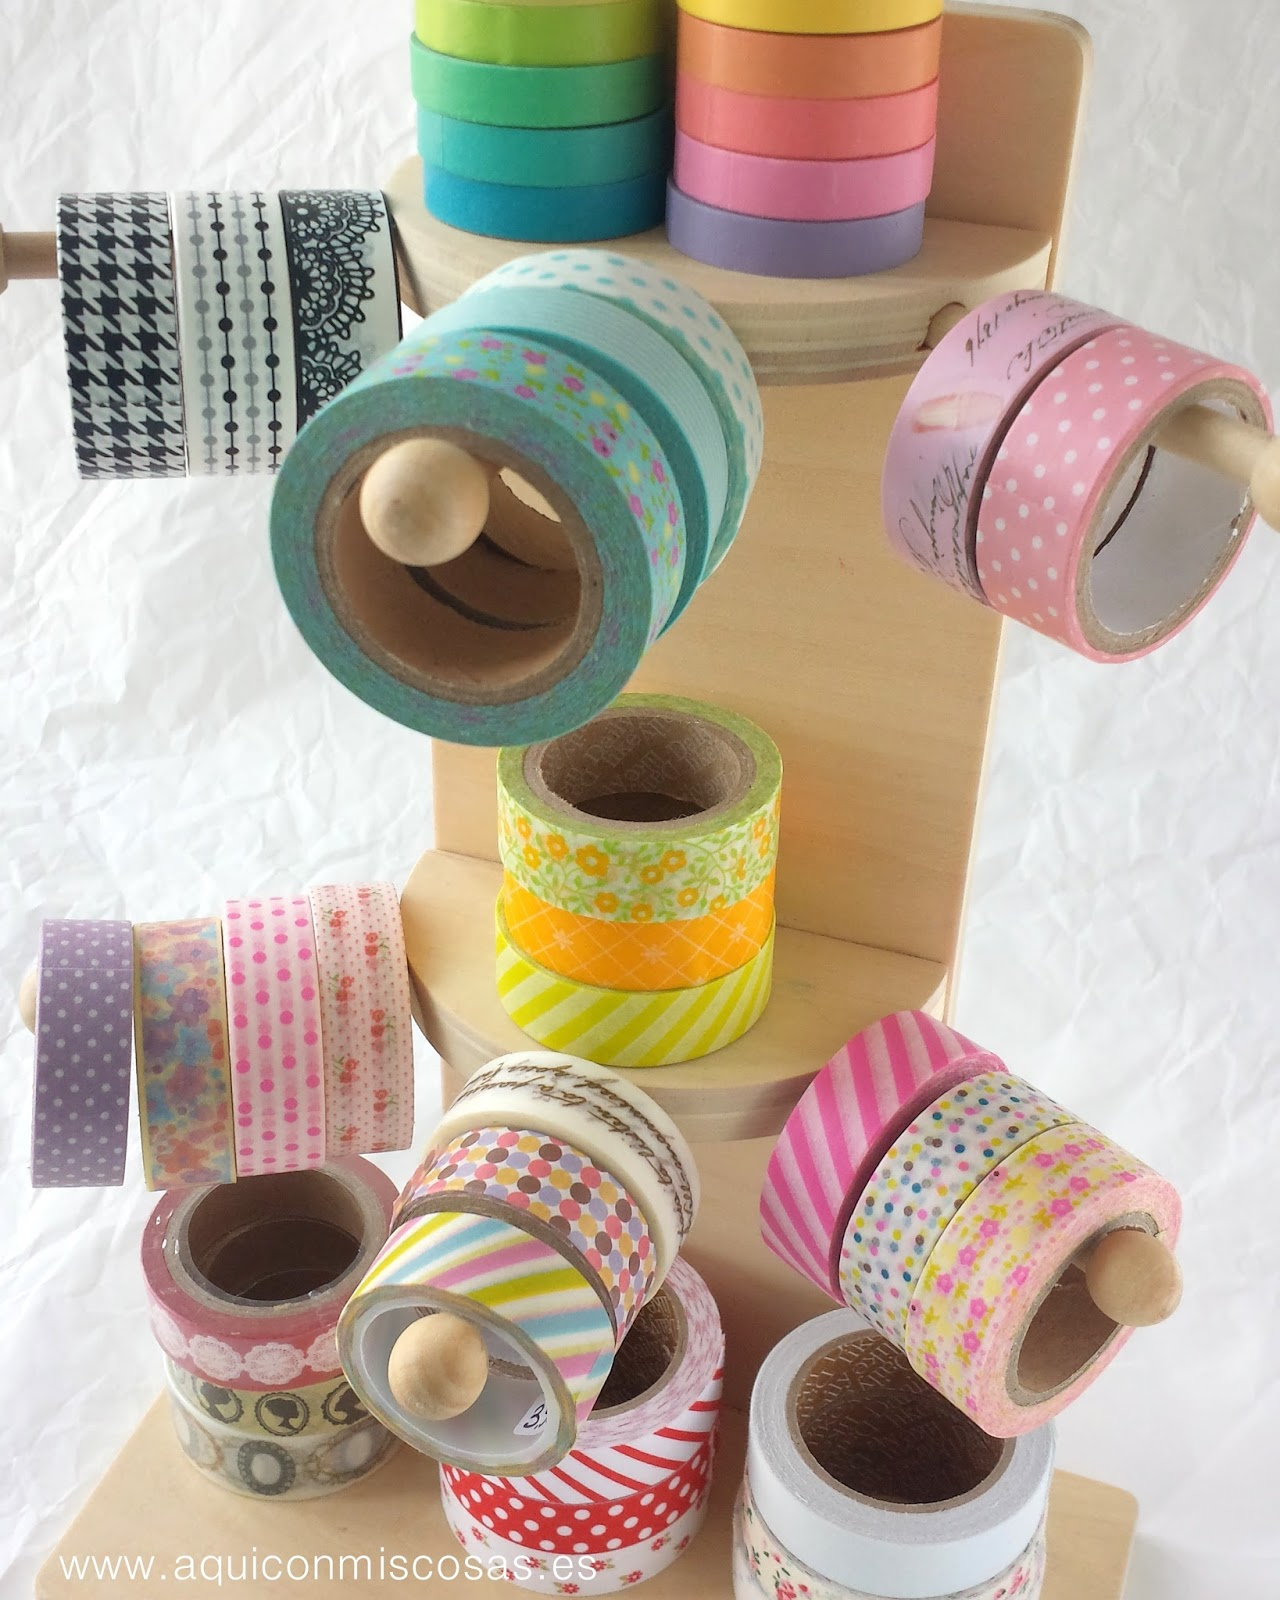 DIY: ETIQUETAS CON WASHI TAPE